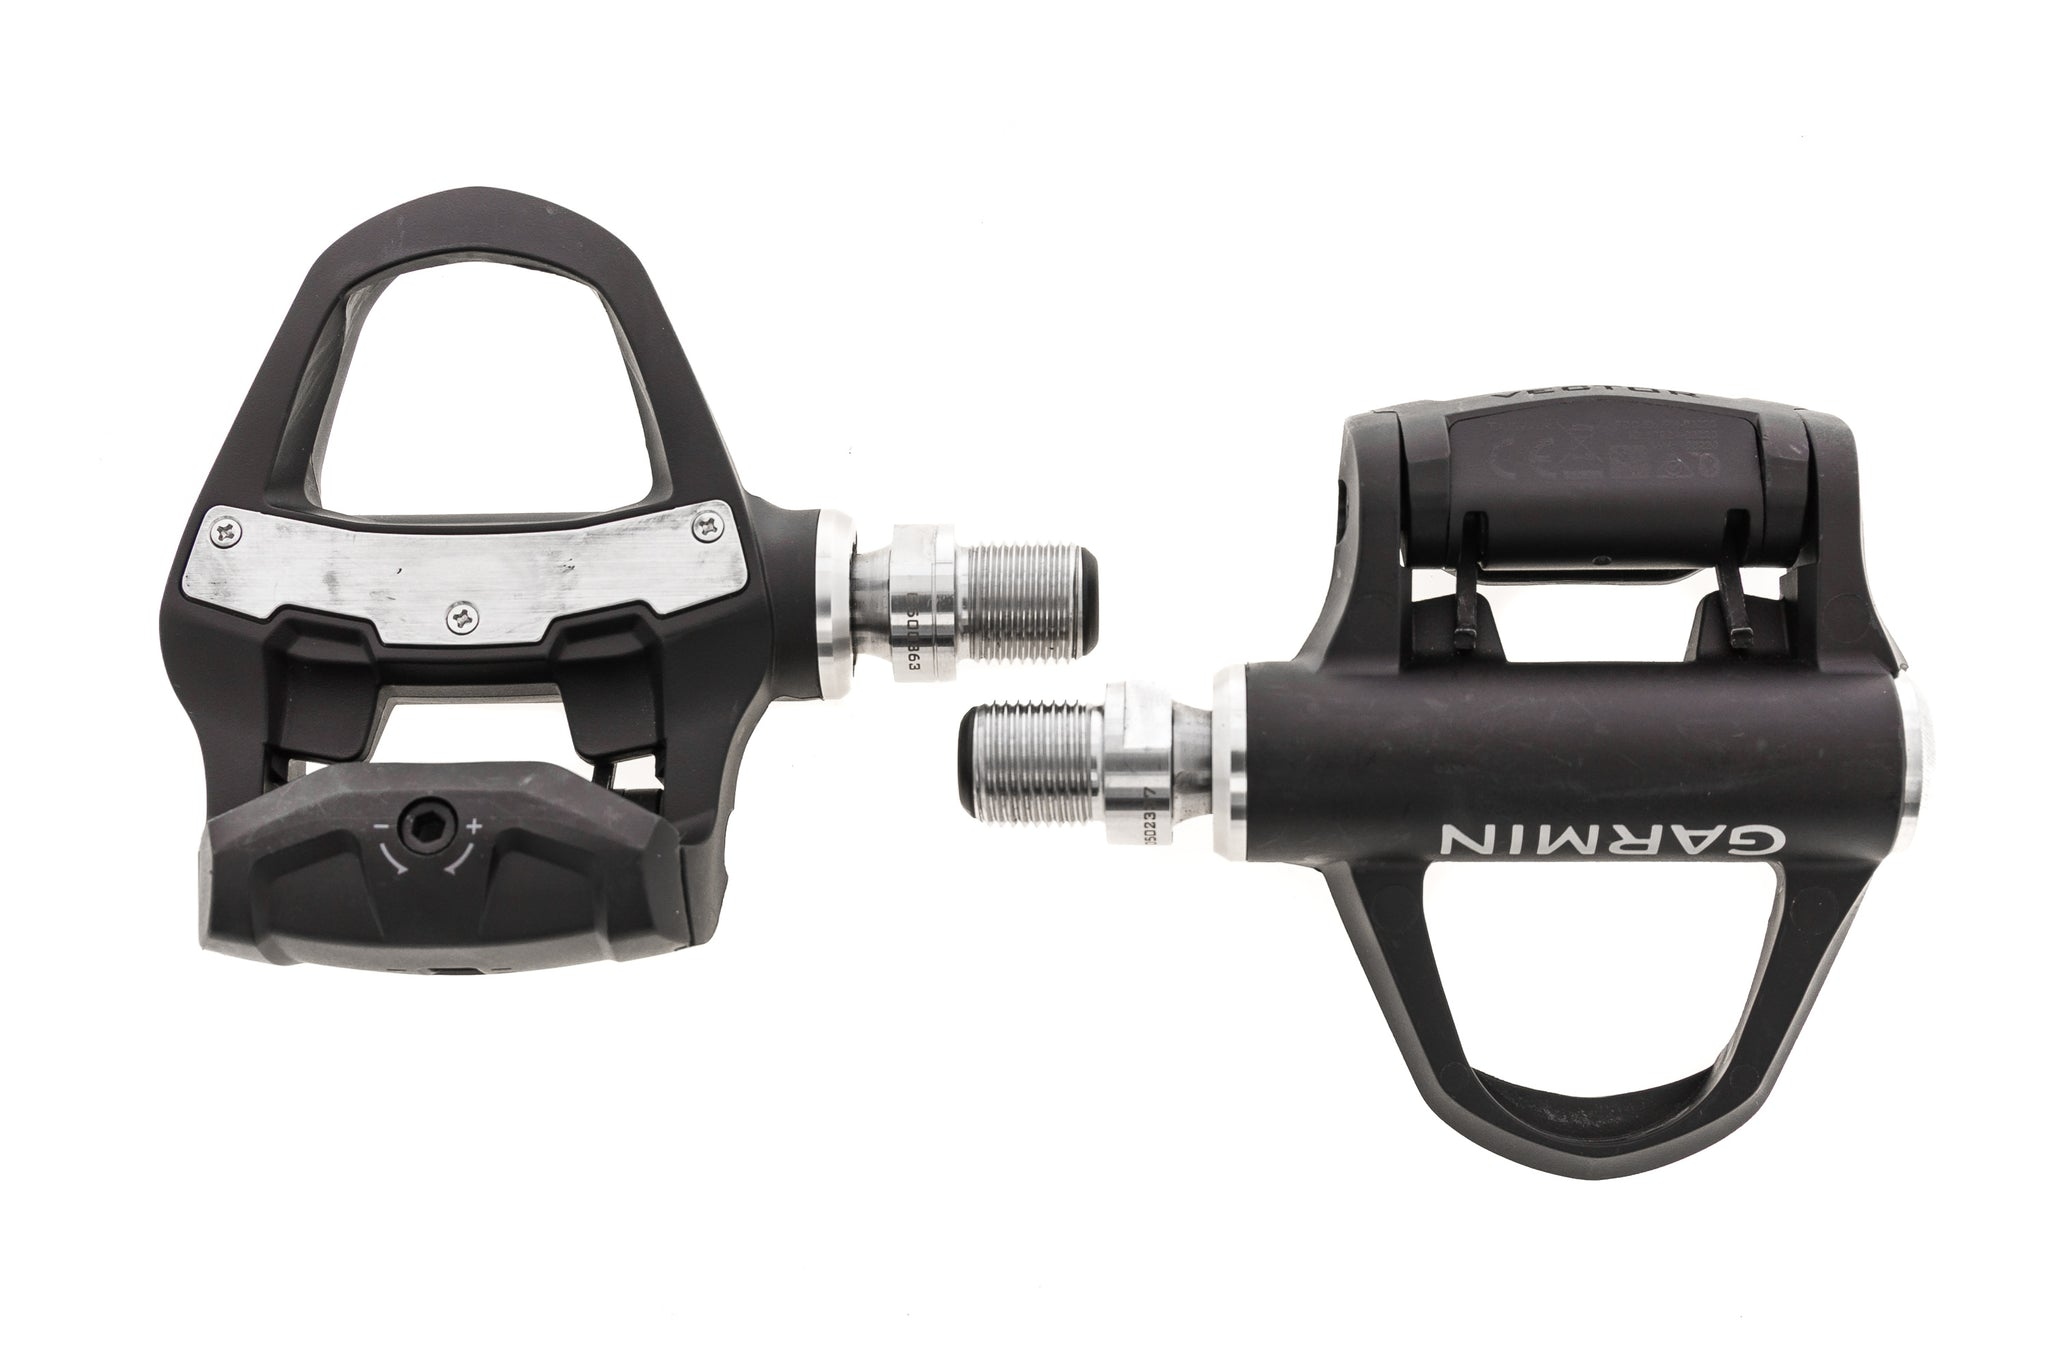 Garmin Vector 3 power meter pedals